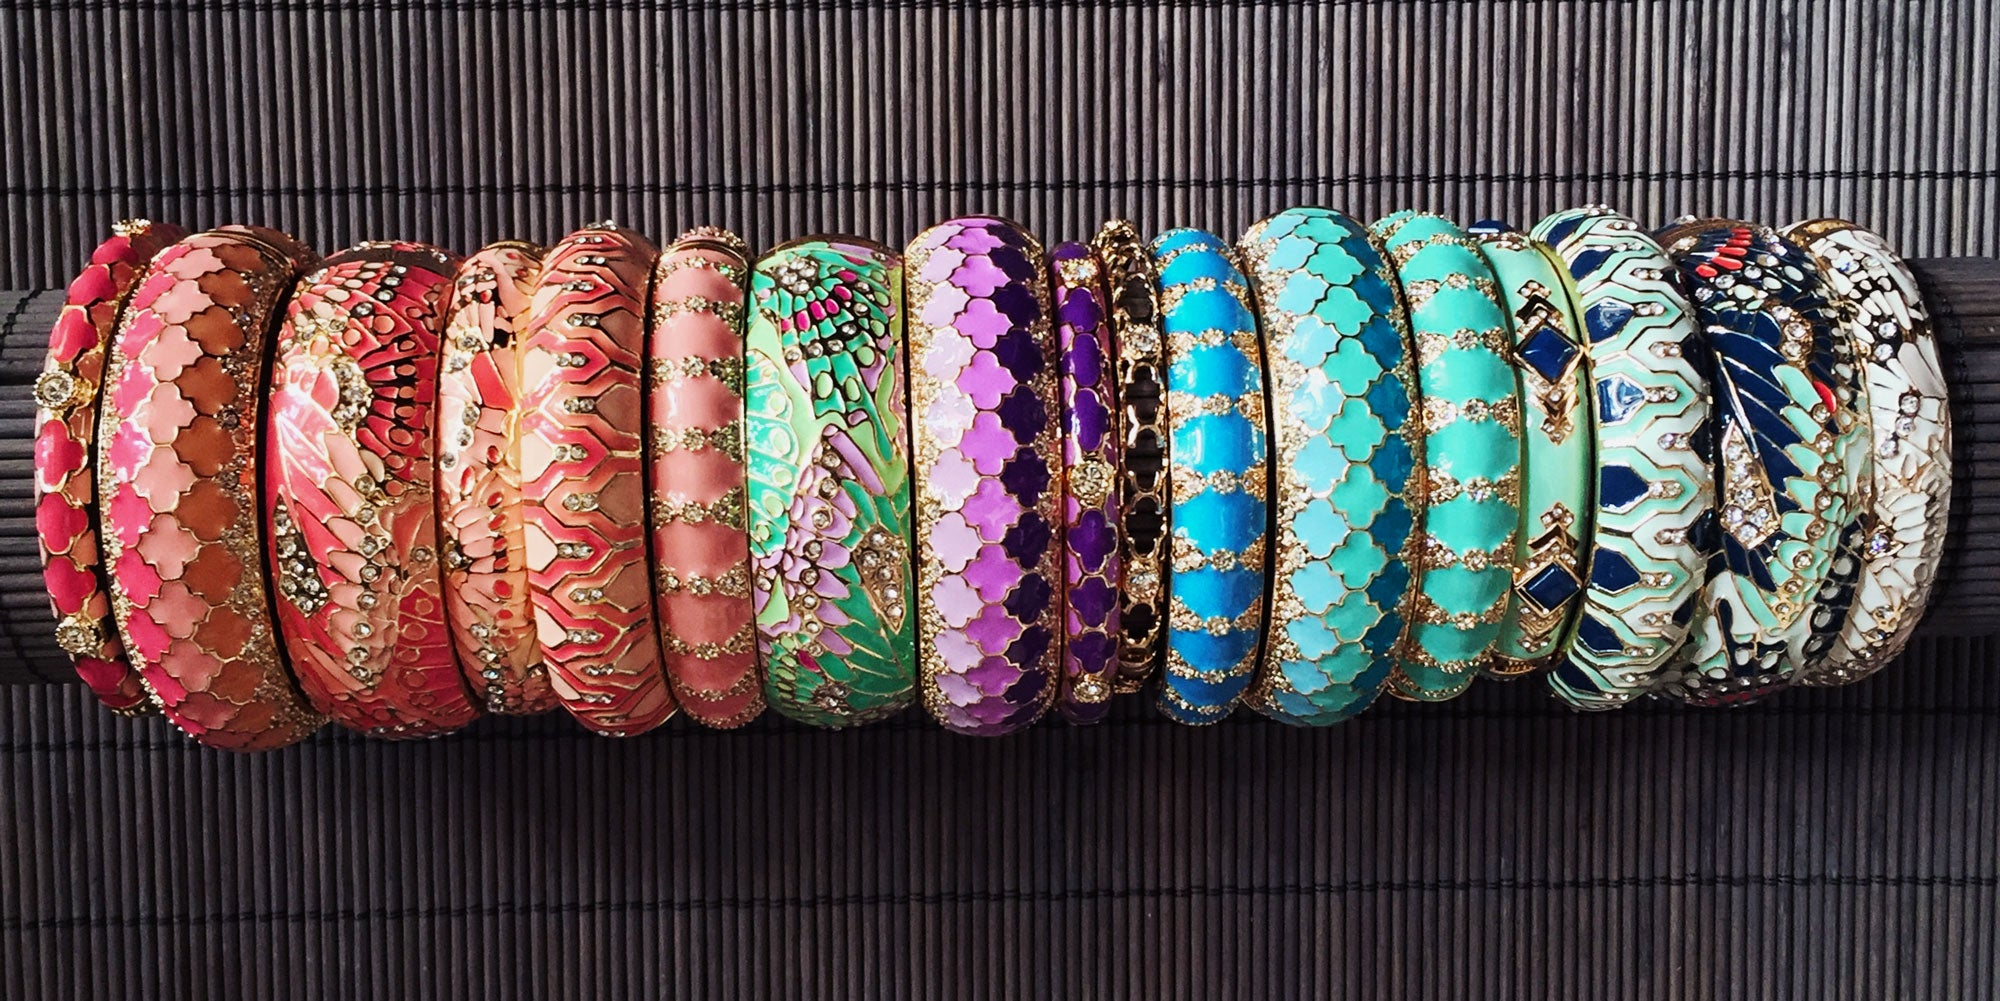 Sequin Marrakesh Enamel Bangle Collection